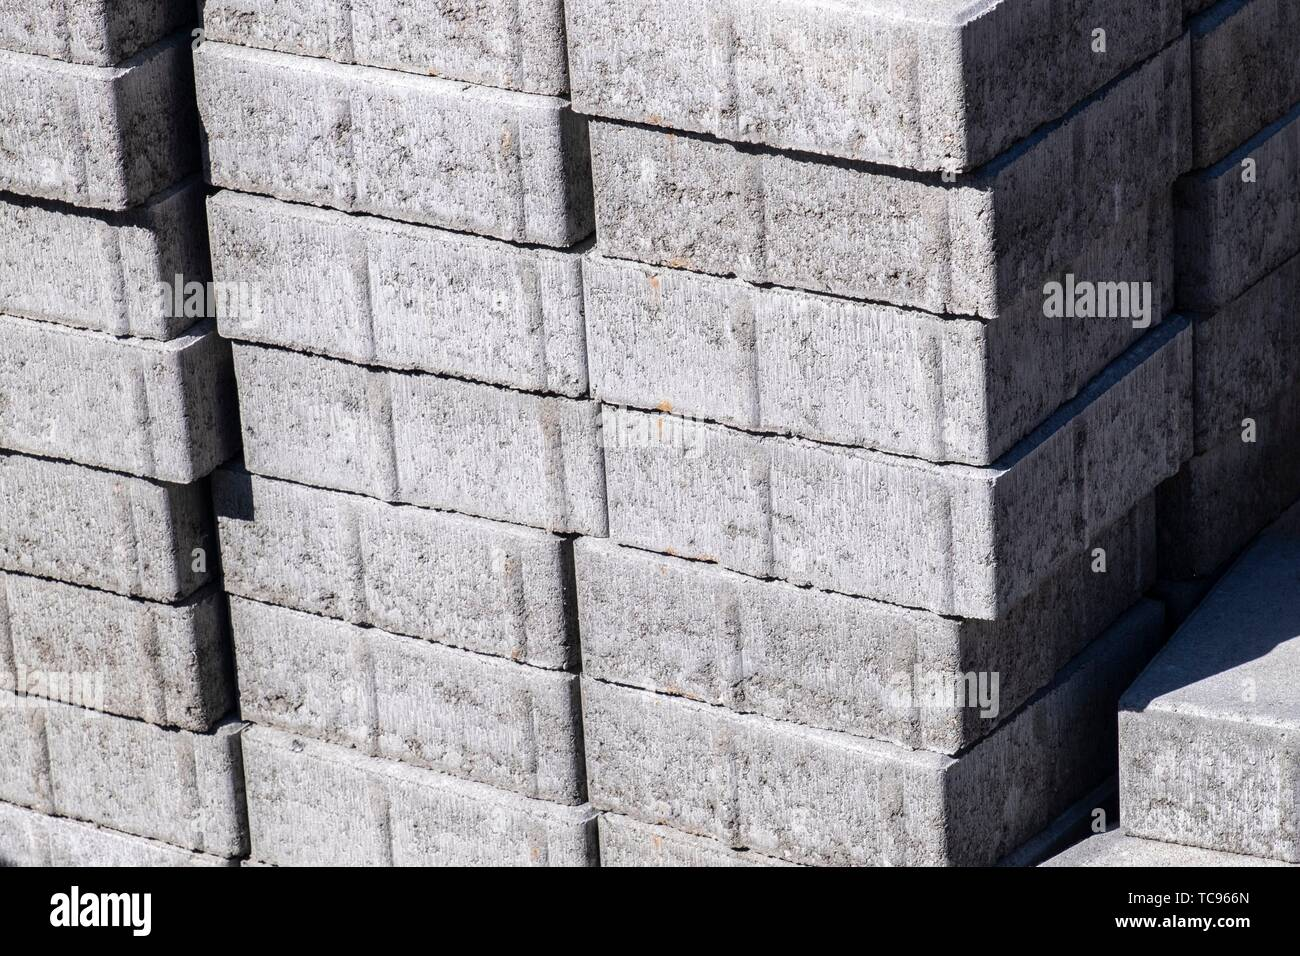 Piles of building material in the forest of Sweden. - Stock Image